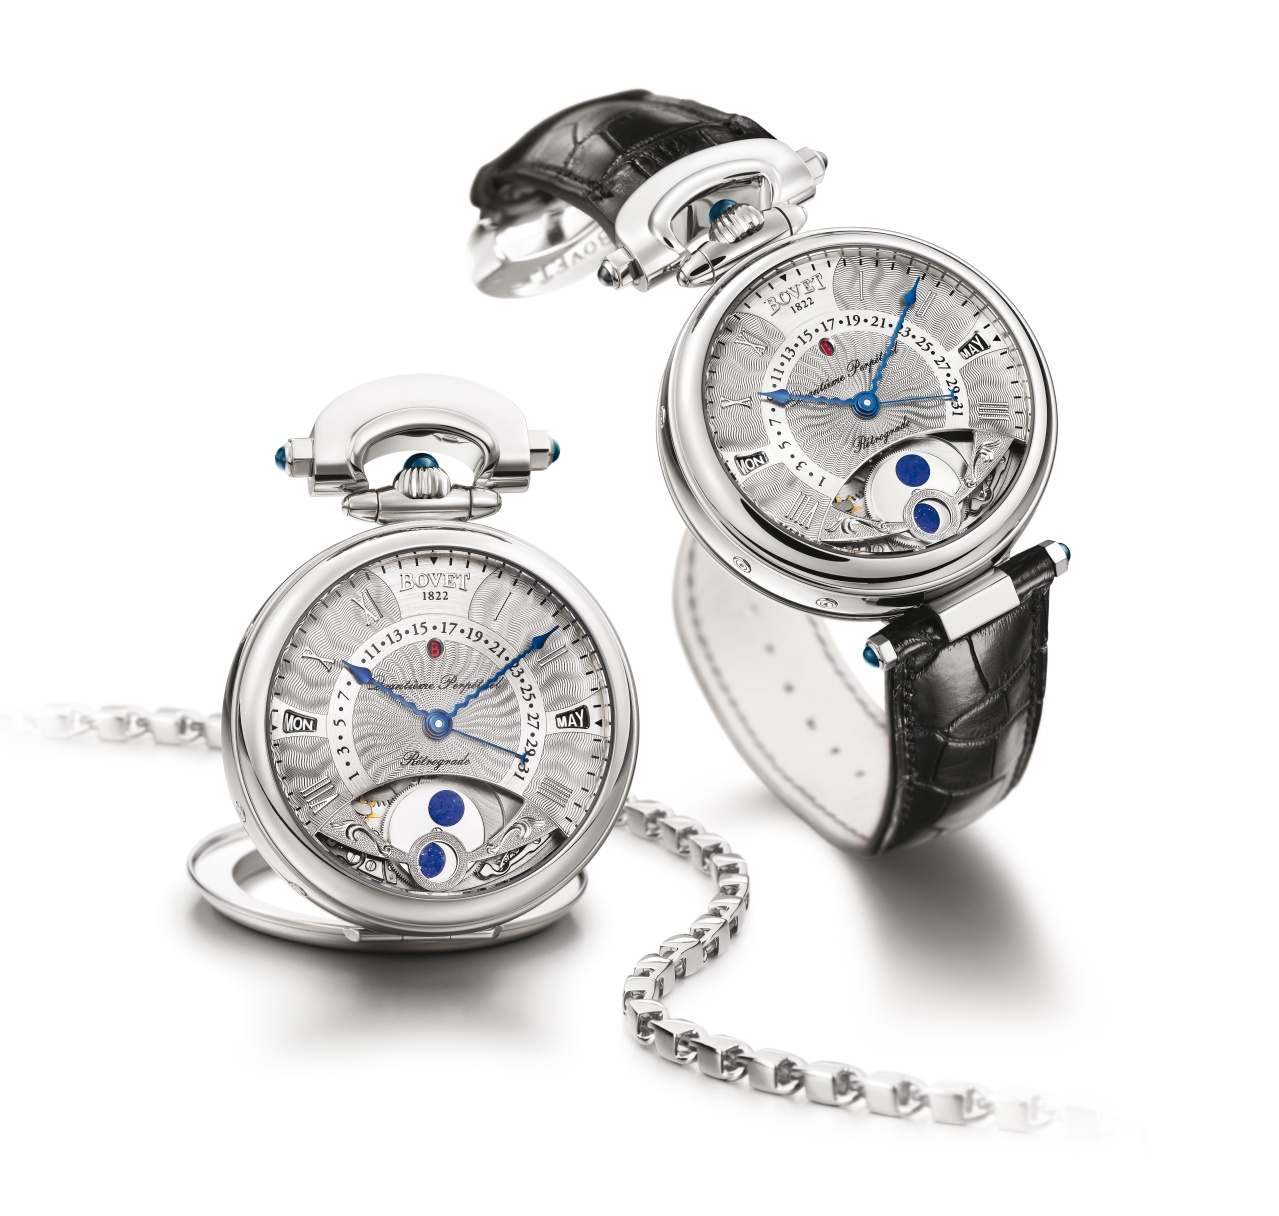 Bovet Watch   Amadeo Fleurier Complications   Ref. Nr. AQPR014    Call 312-944-3100  | For Availability